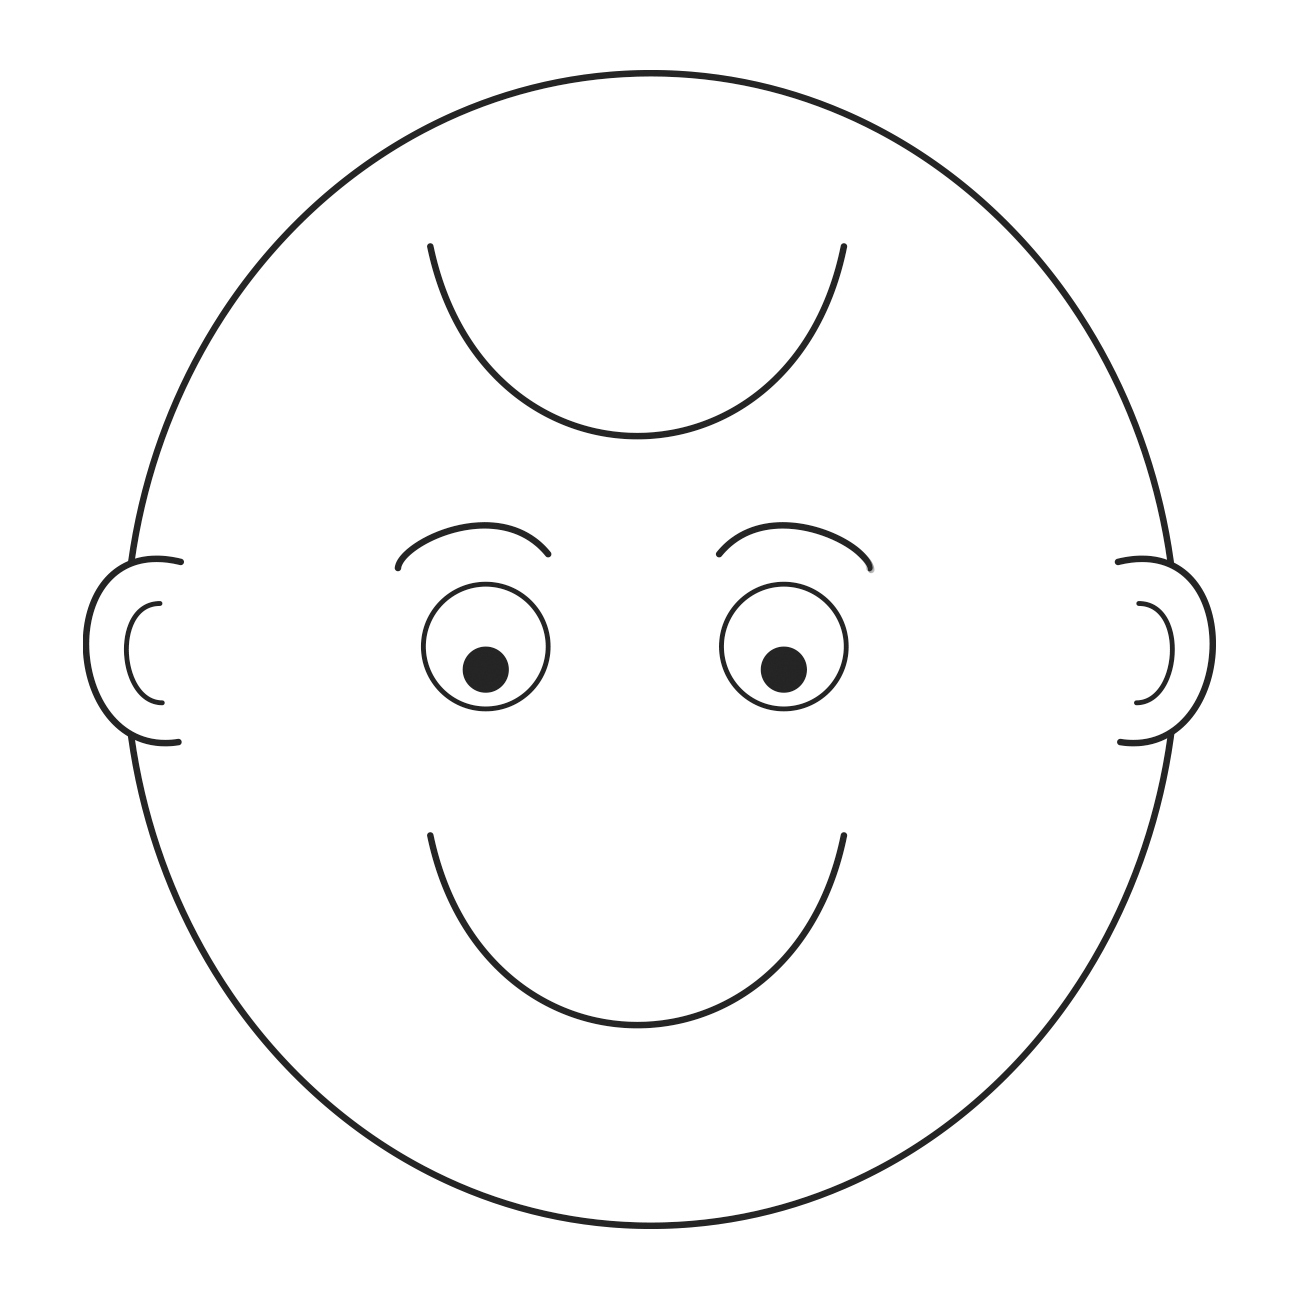 An illustration of a smiling/frowning face from the nursery manual Behold Your Little Ones (2008), page 83.